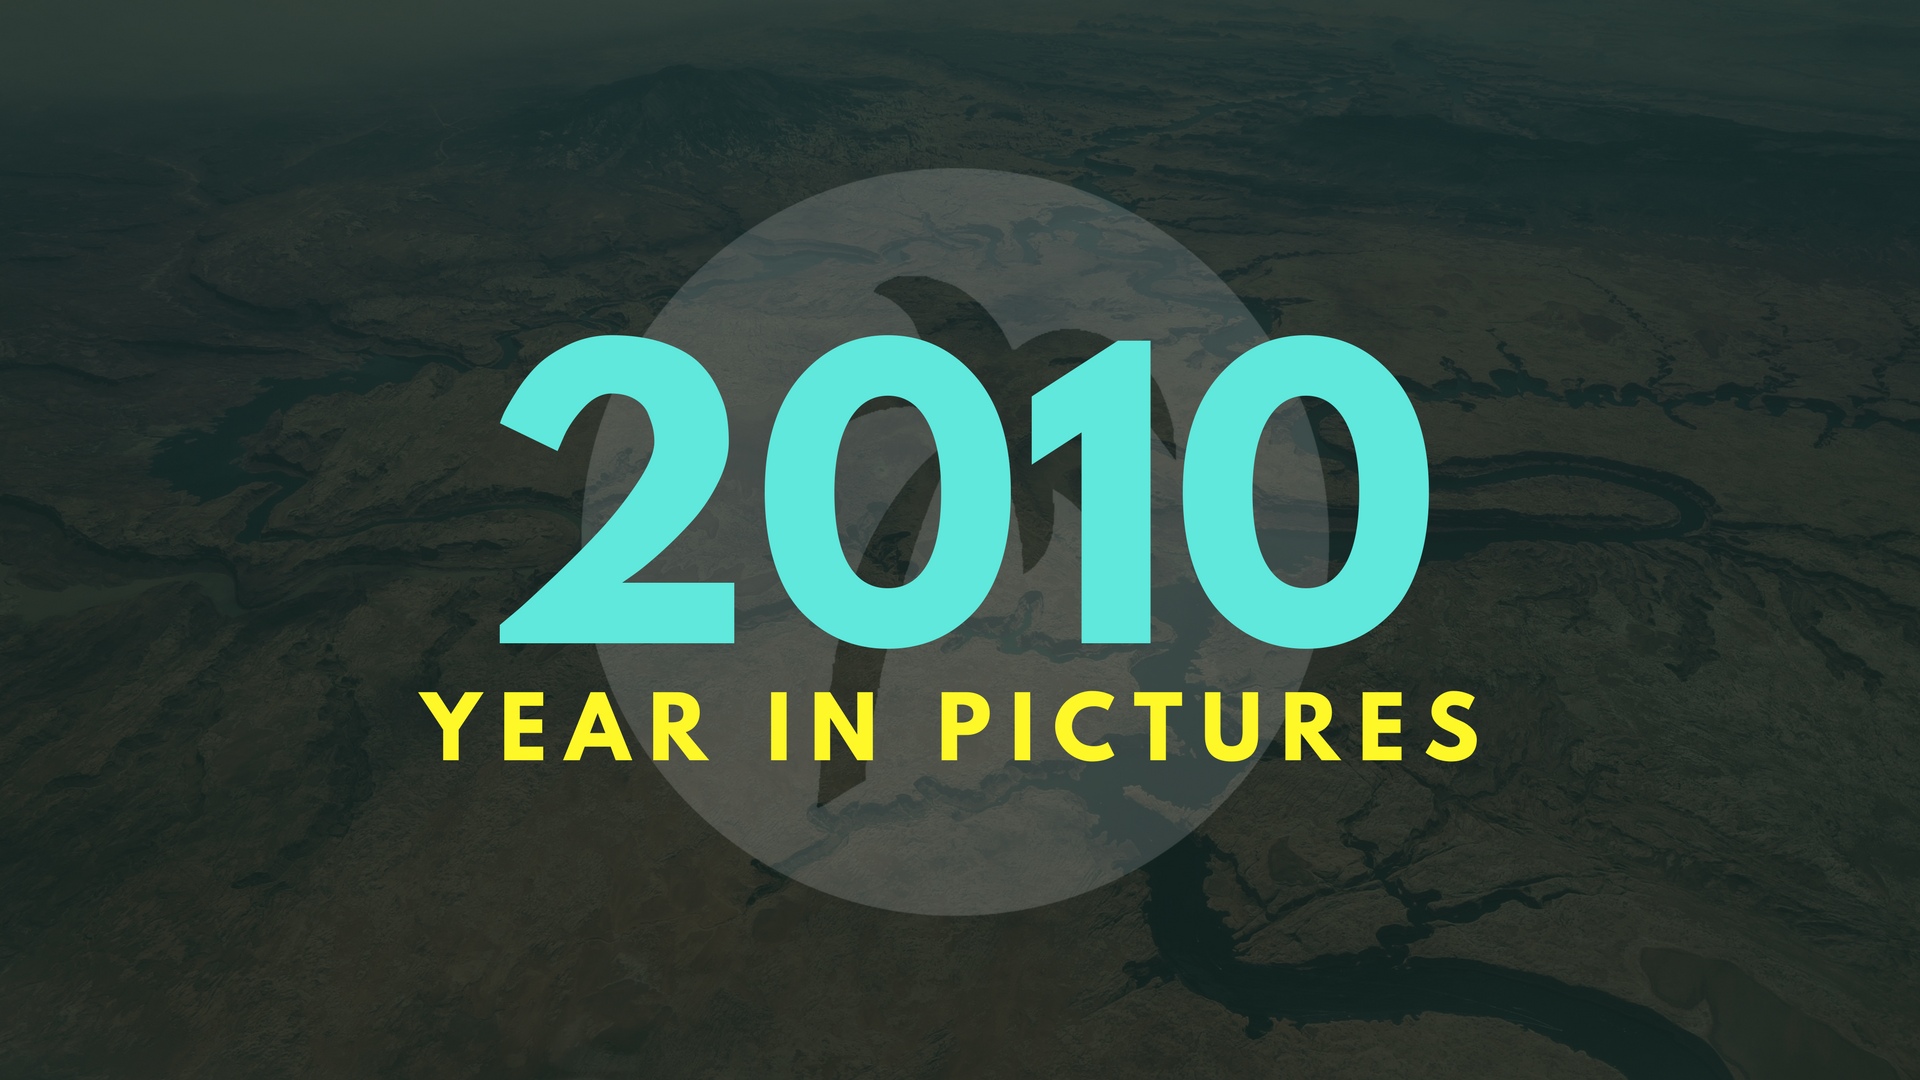 2010 Year In Pictures Image